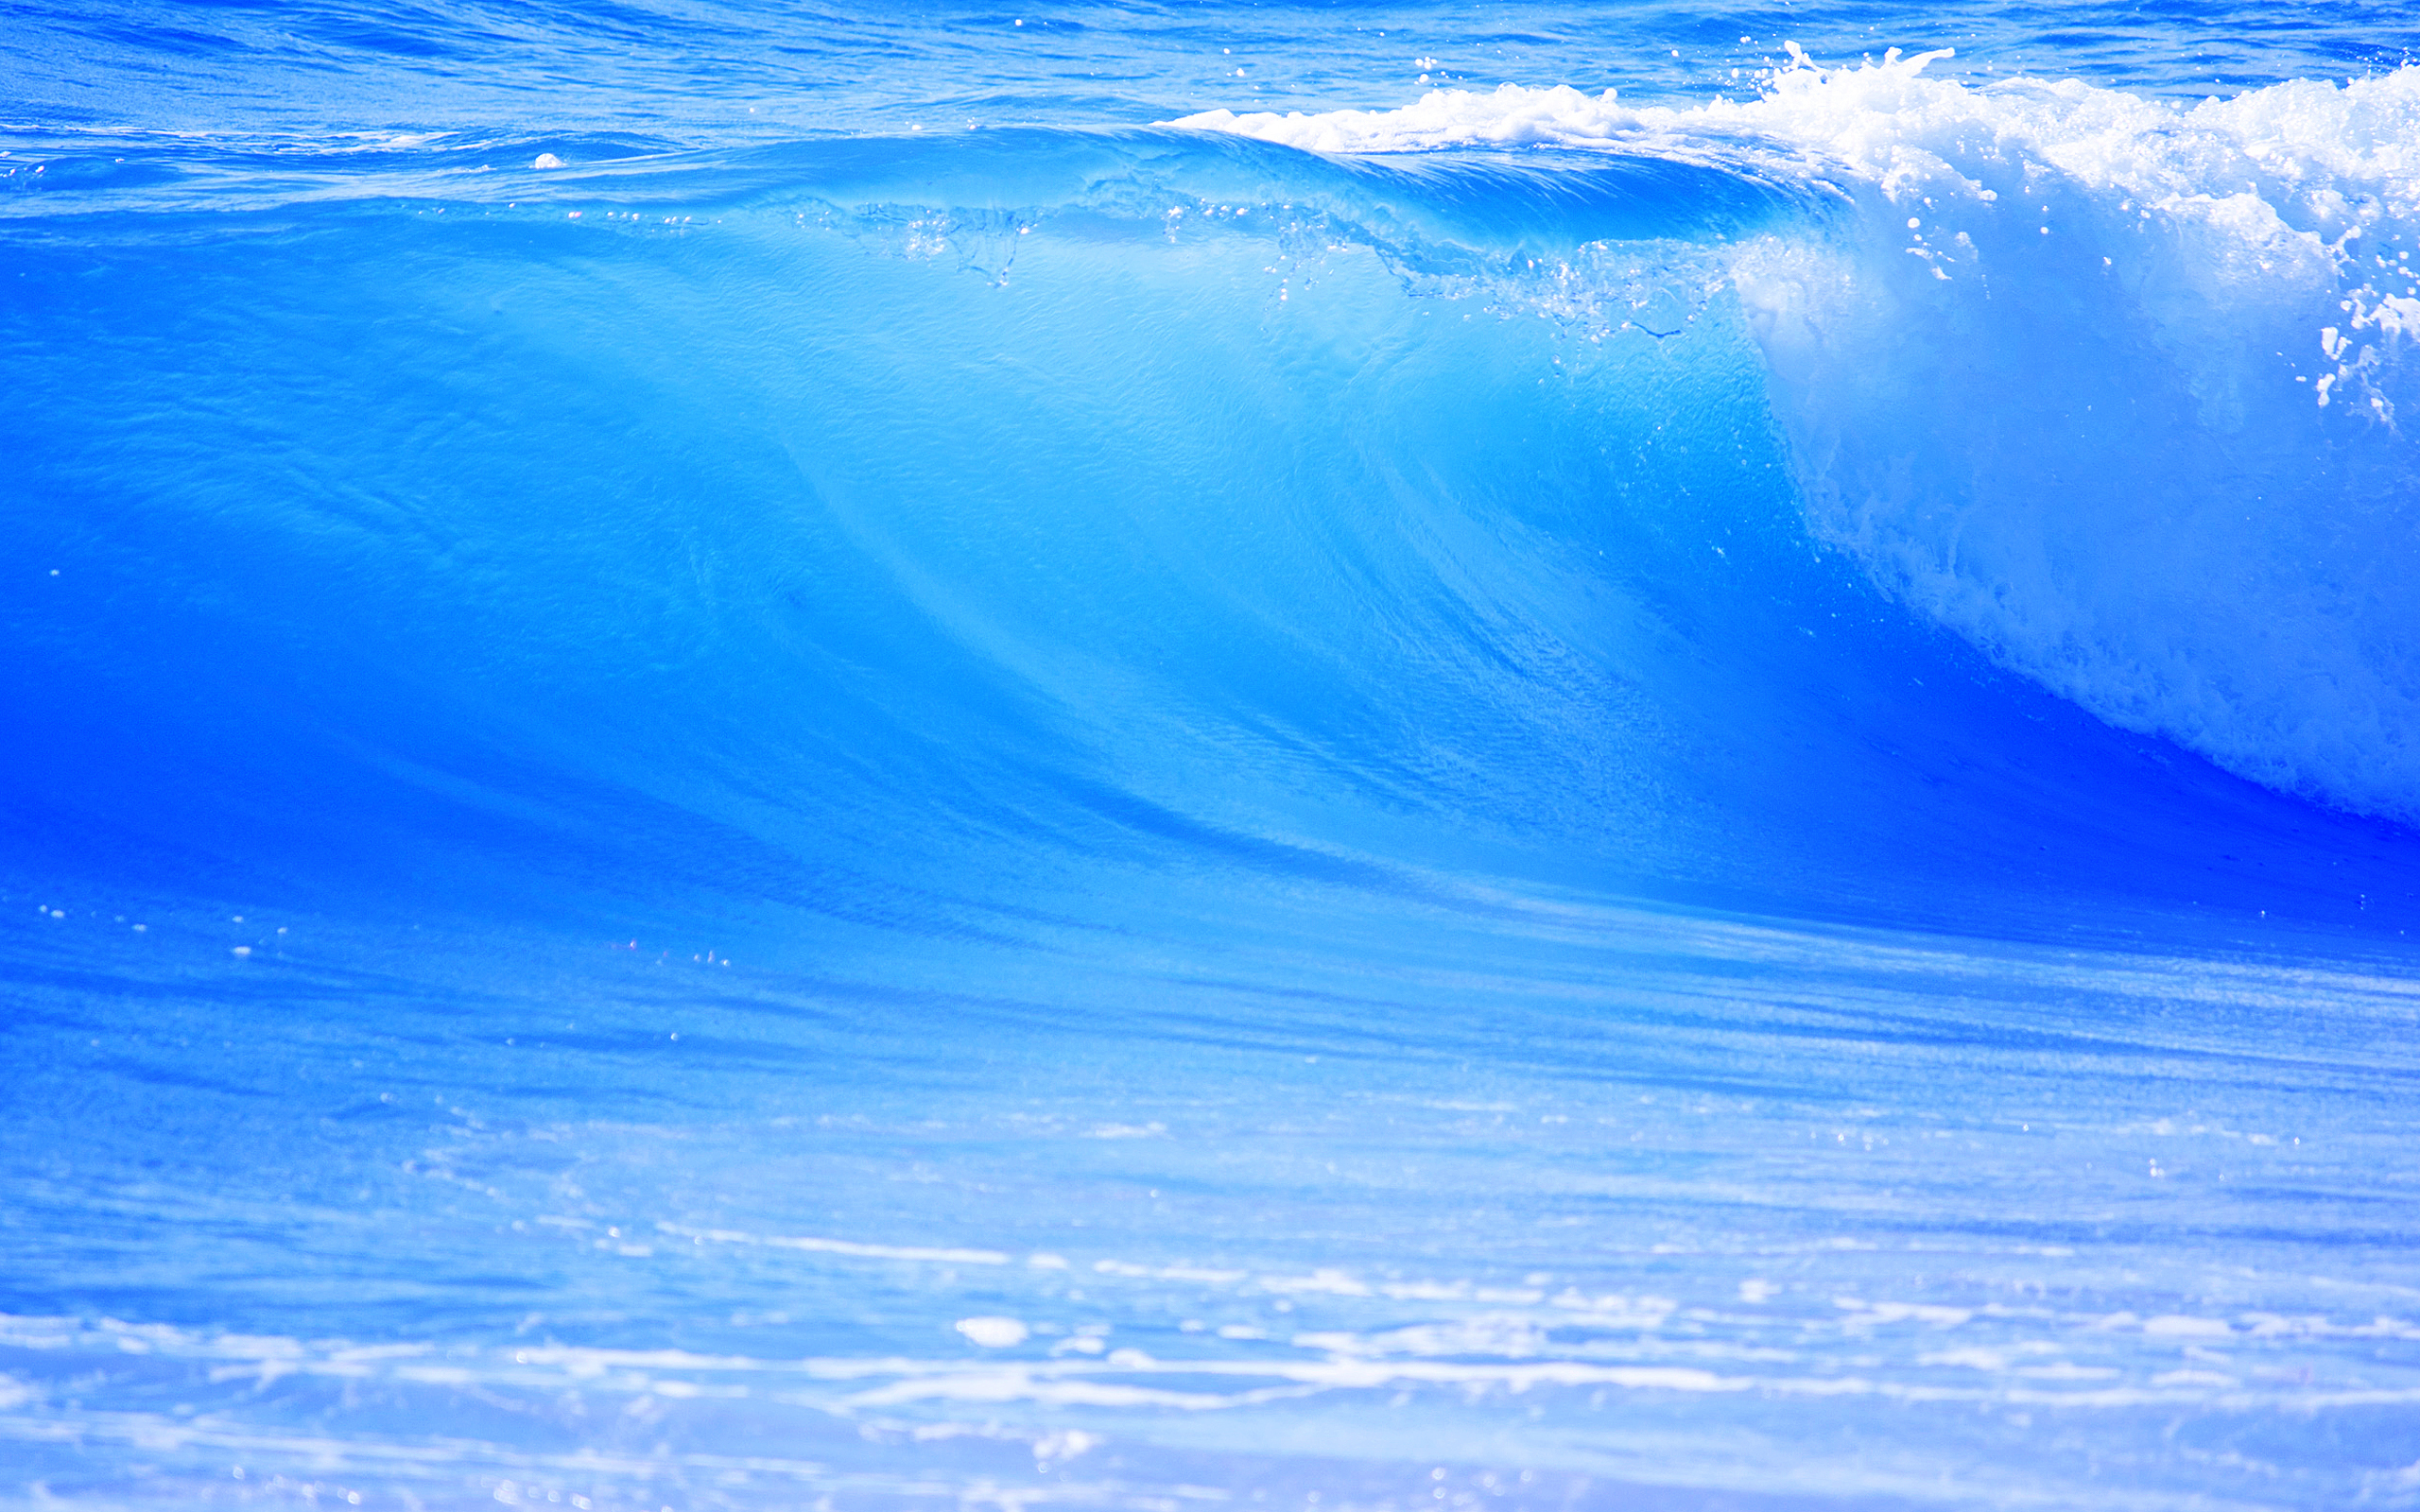 wave wallpaper 12049